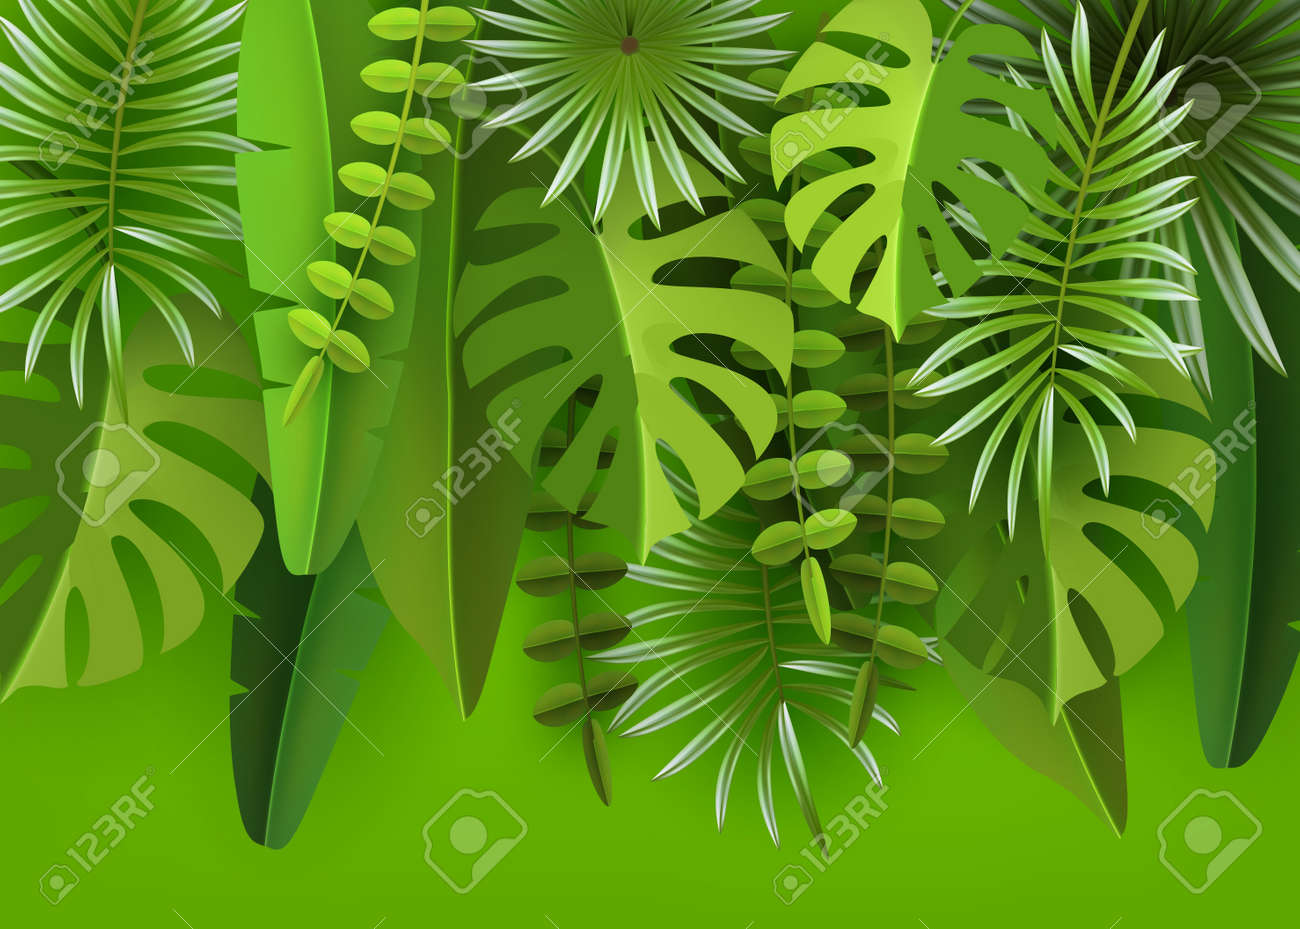 Tropical leaves and plants. Green abstract background with tropical foliage. - 96848855